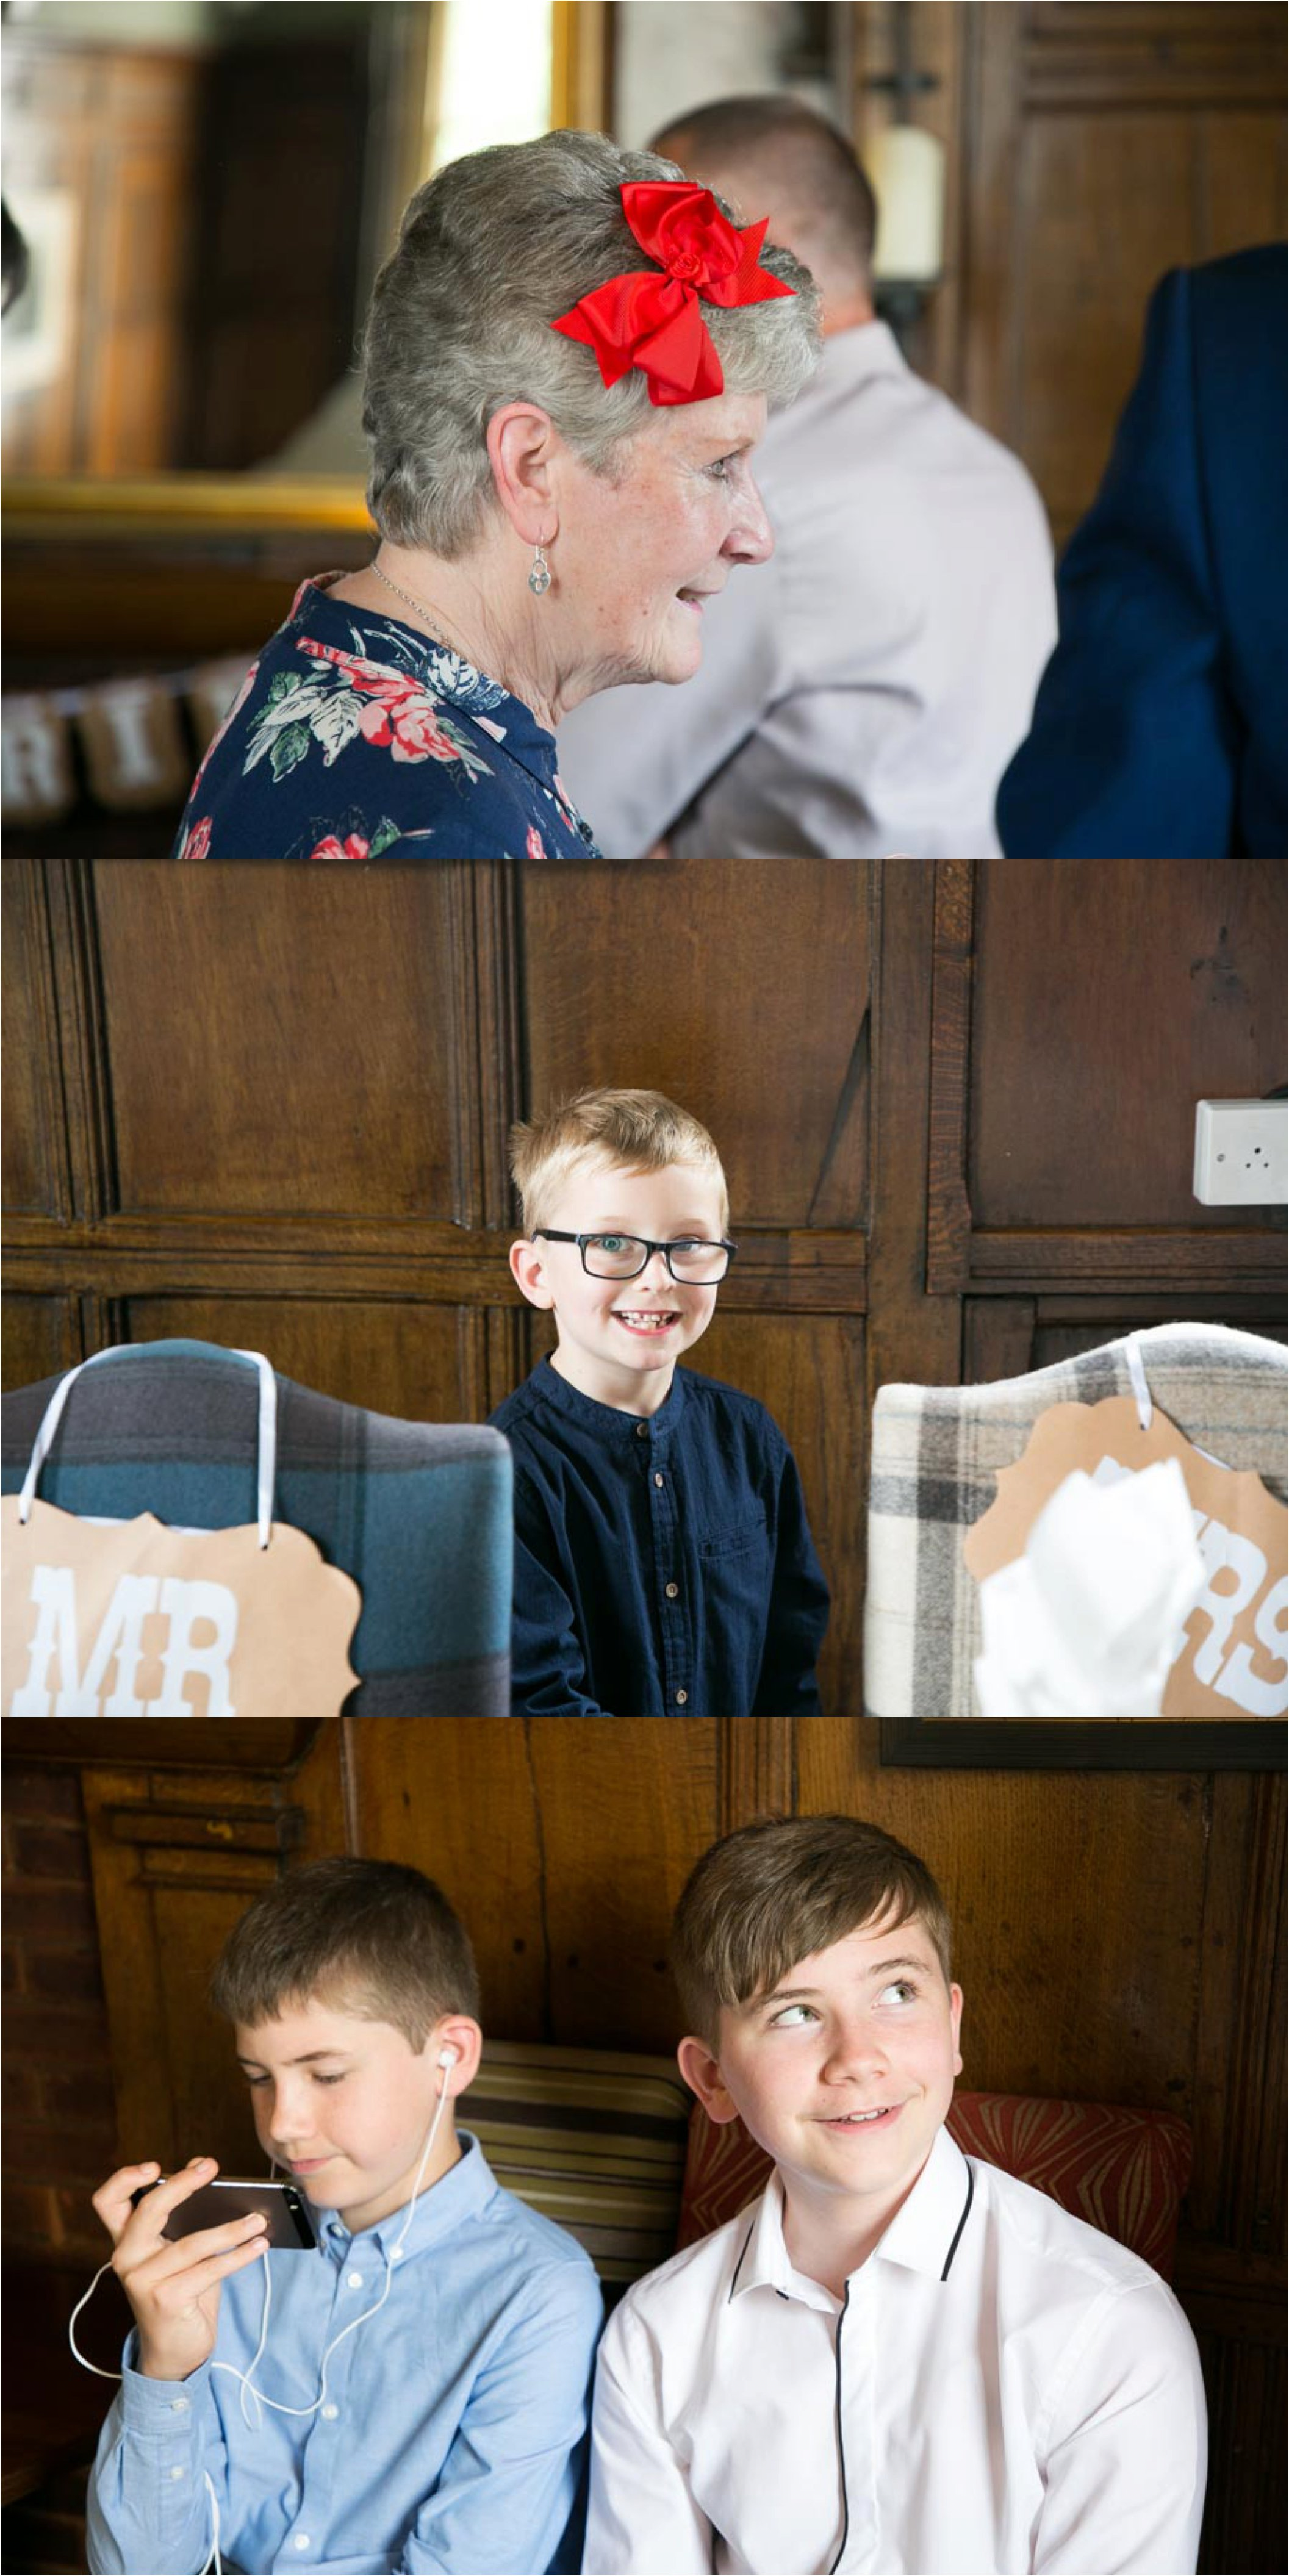 documentary wedding photography in Bury St Edmunds